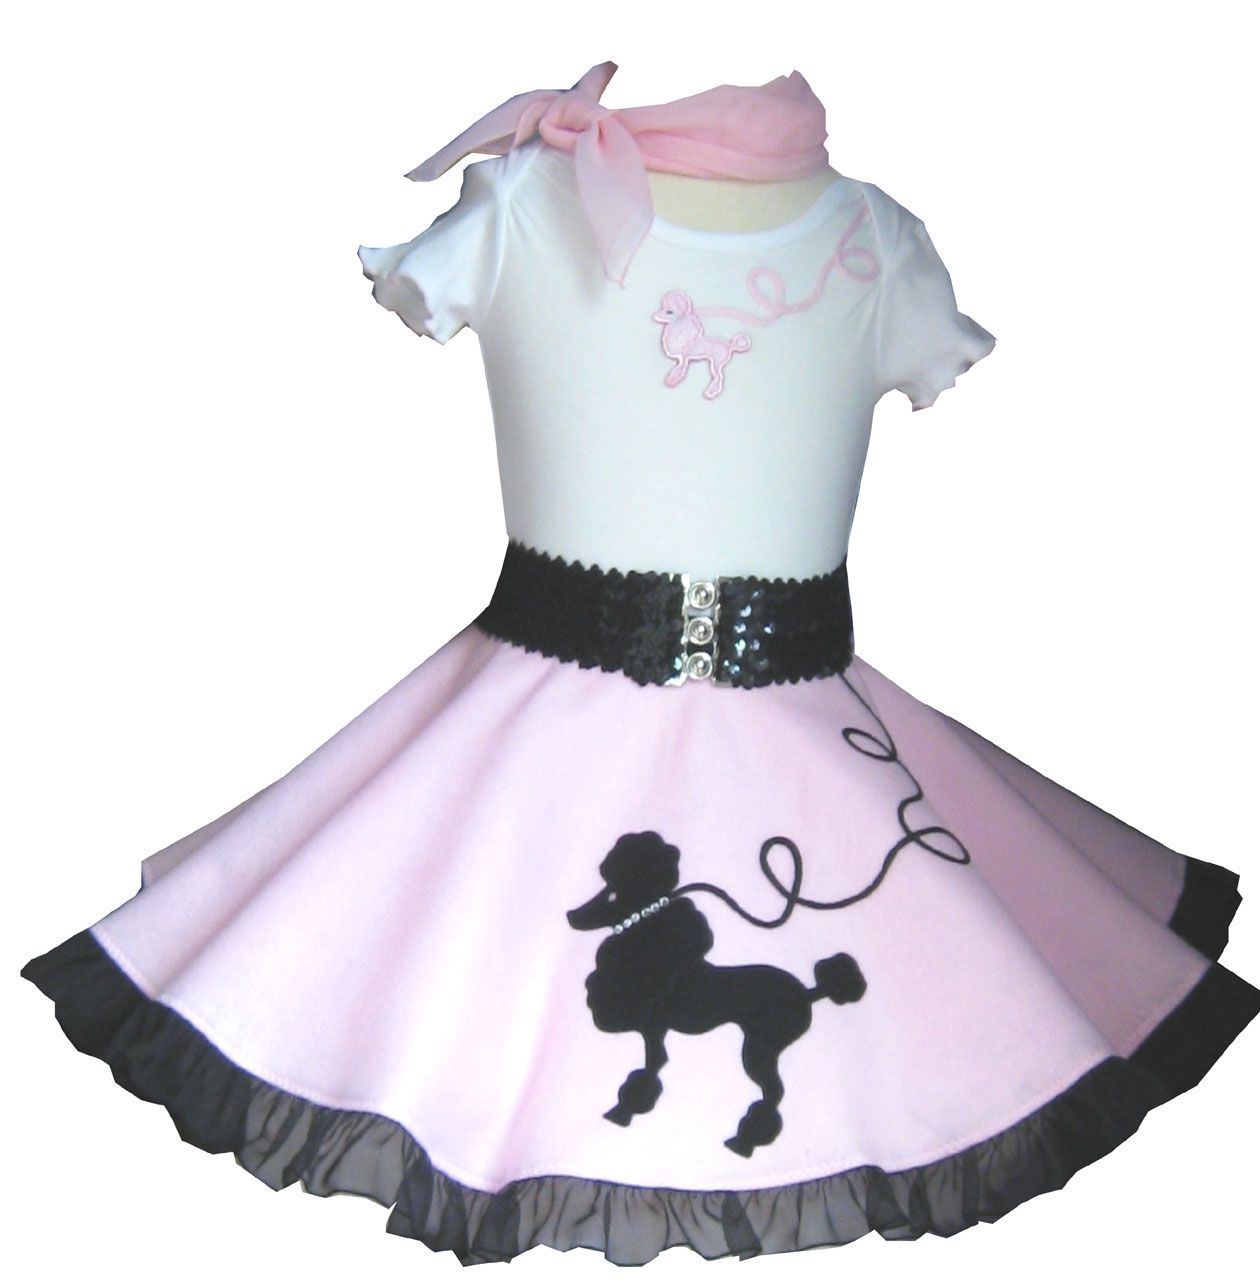 Baby Poodle Skirt Outfit